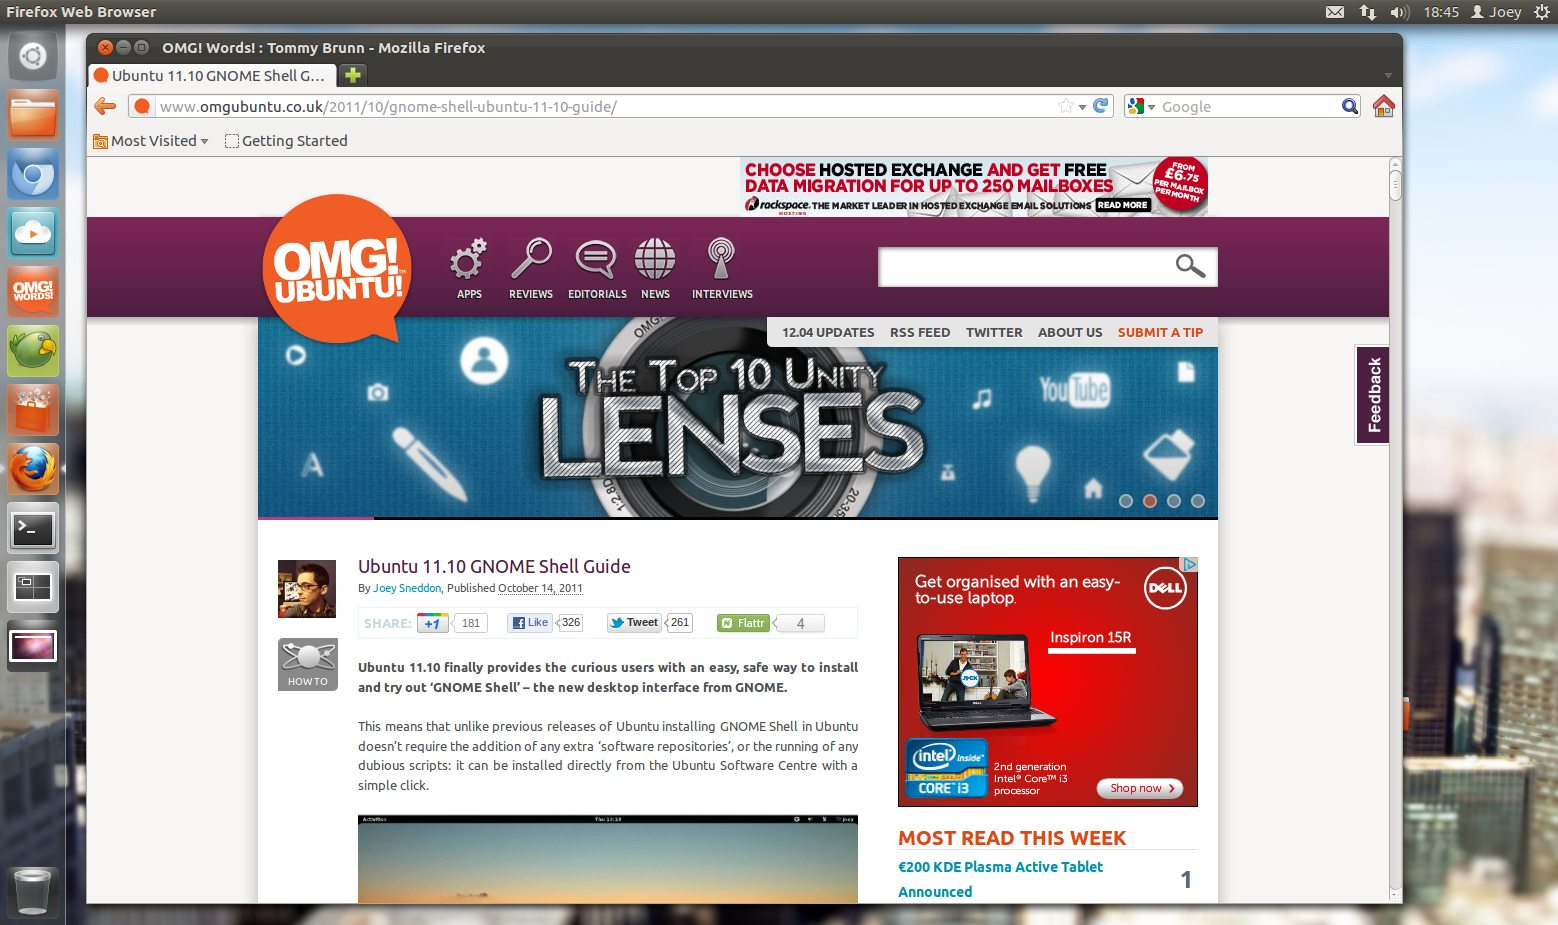 Firefox 10 in Ubuntu 12.04